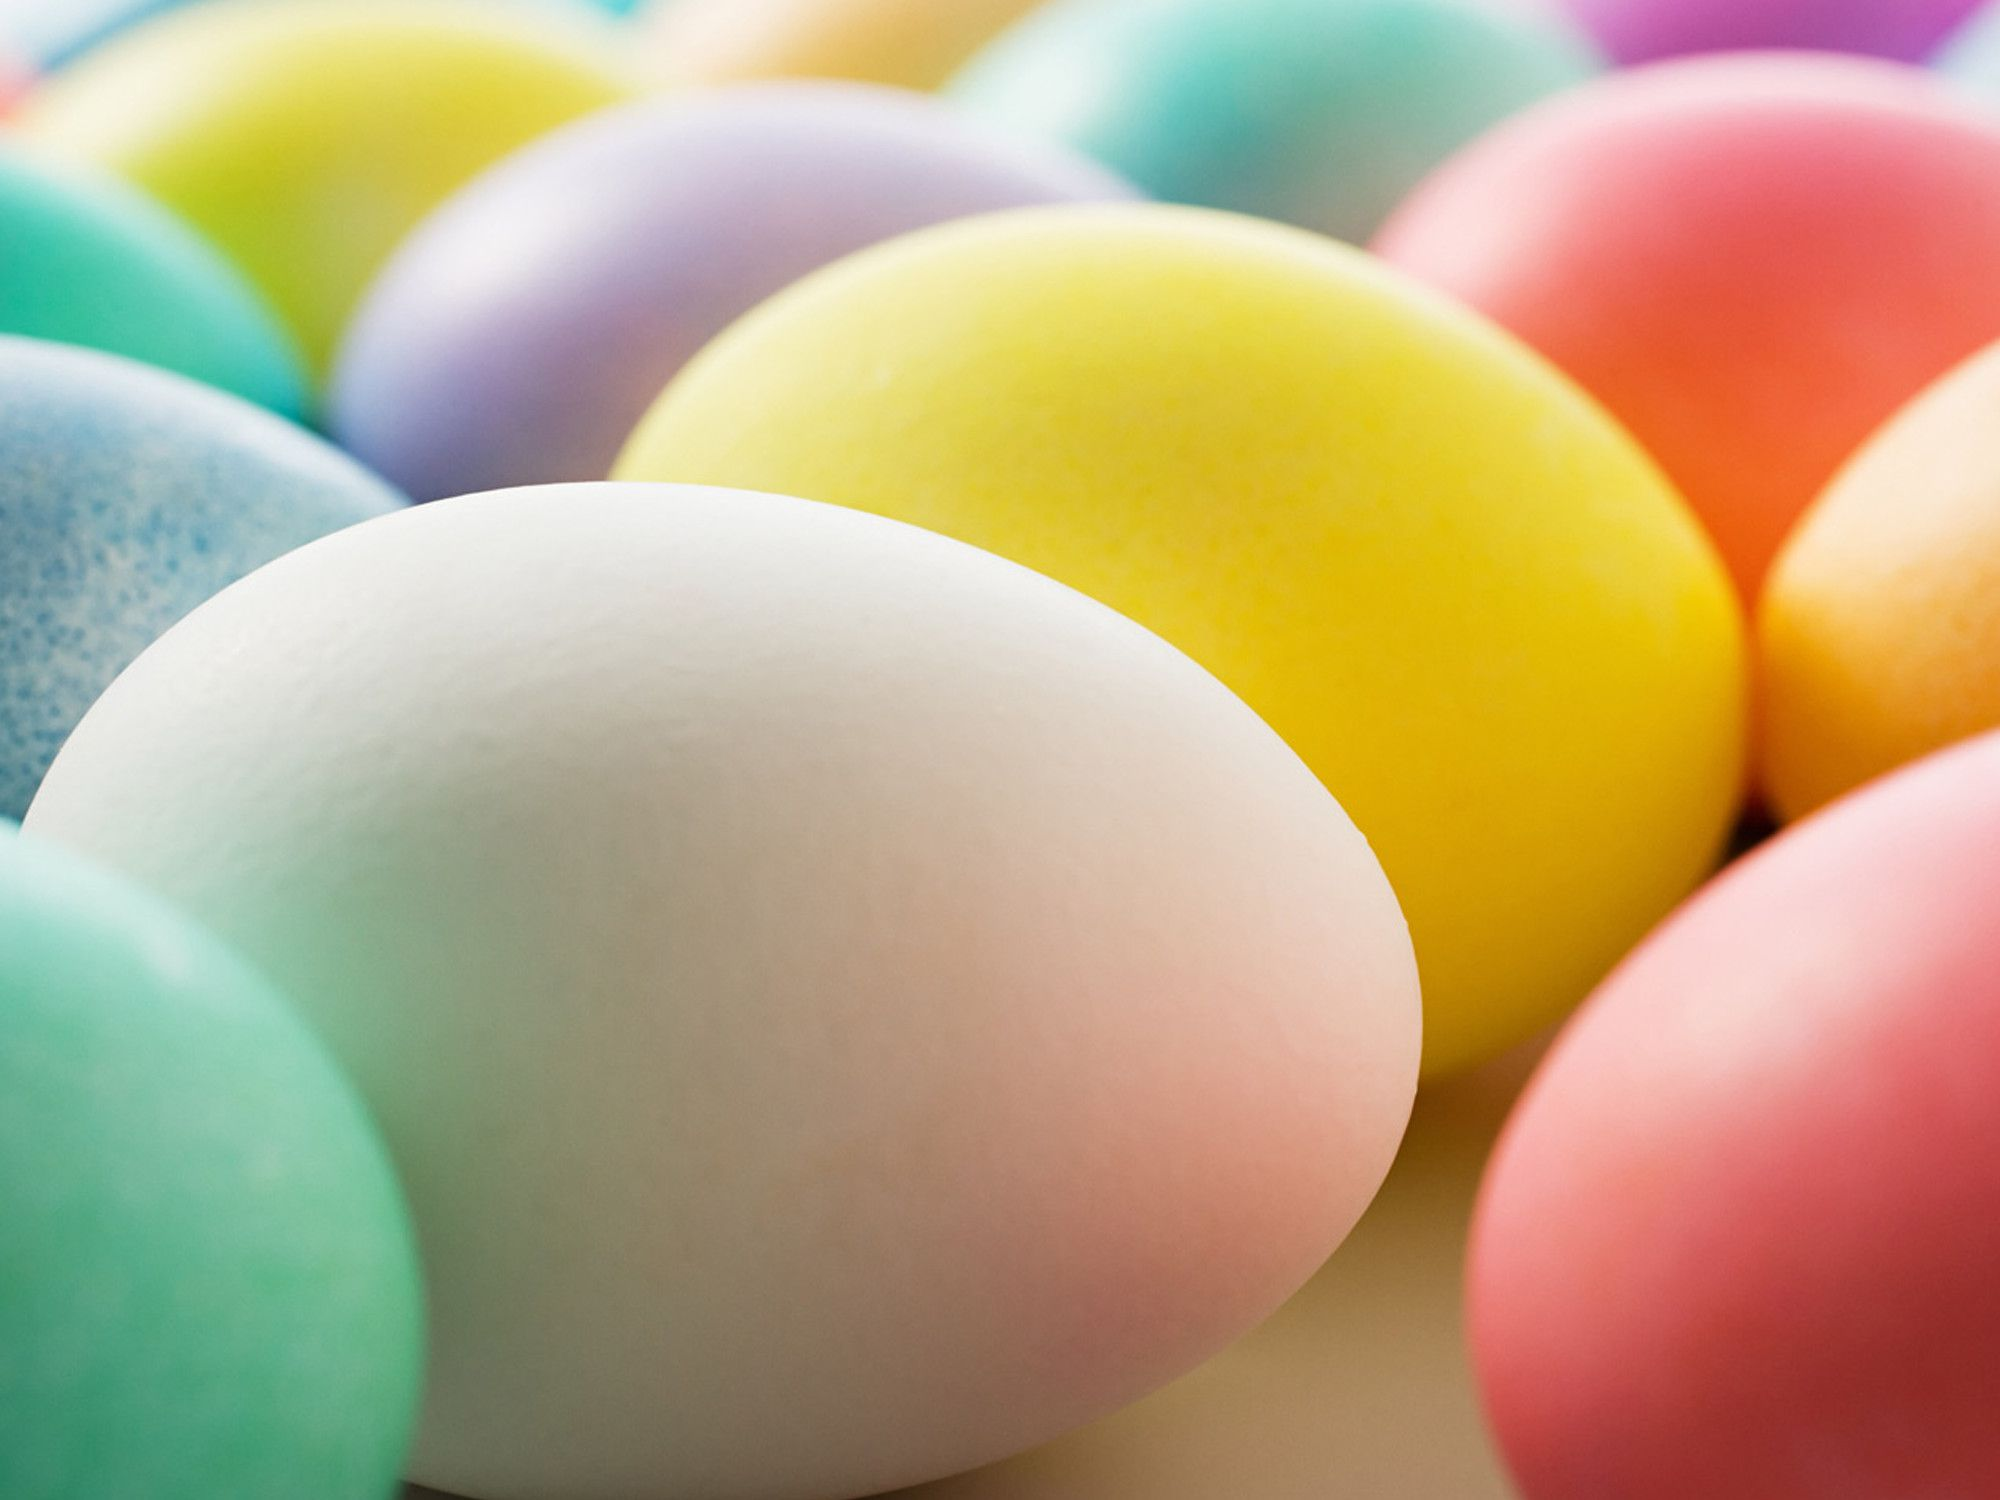 close up of different colored Easter eggs